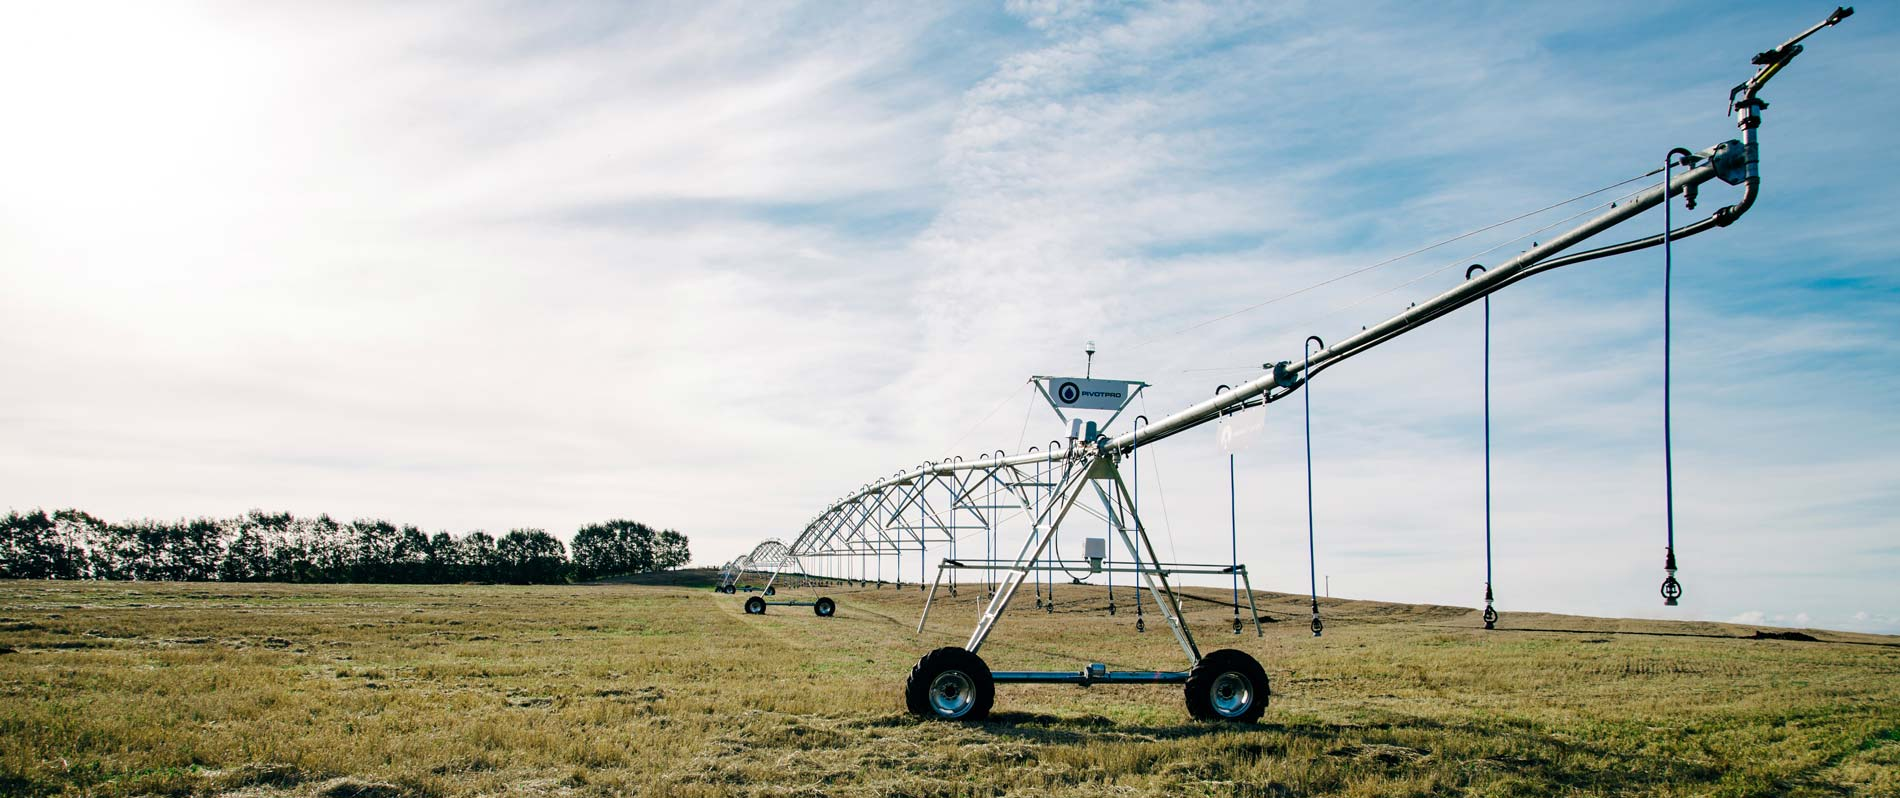 PivotPro | Centre Pivot Irrigation Systems